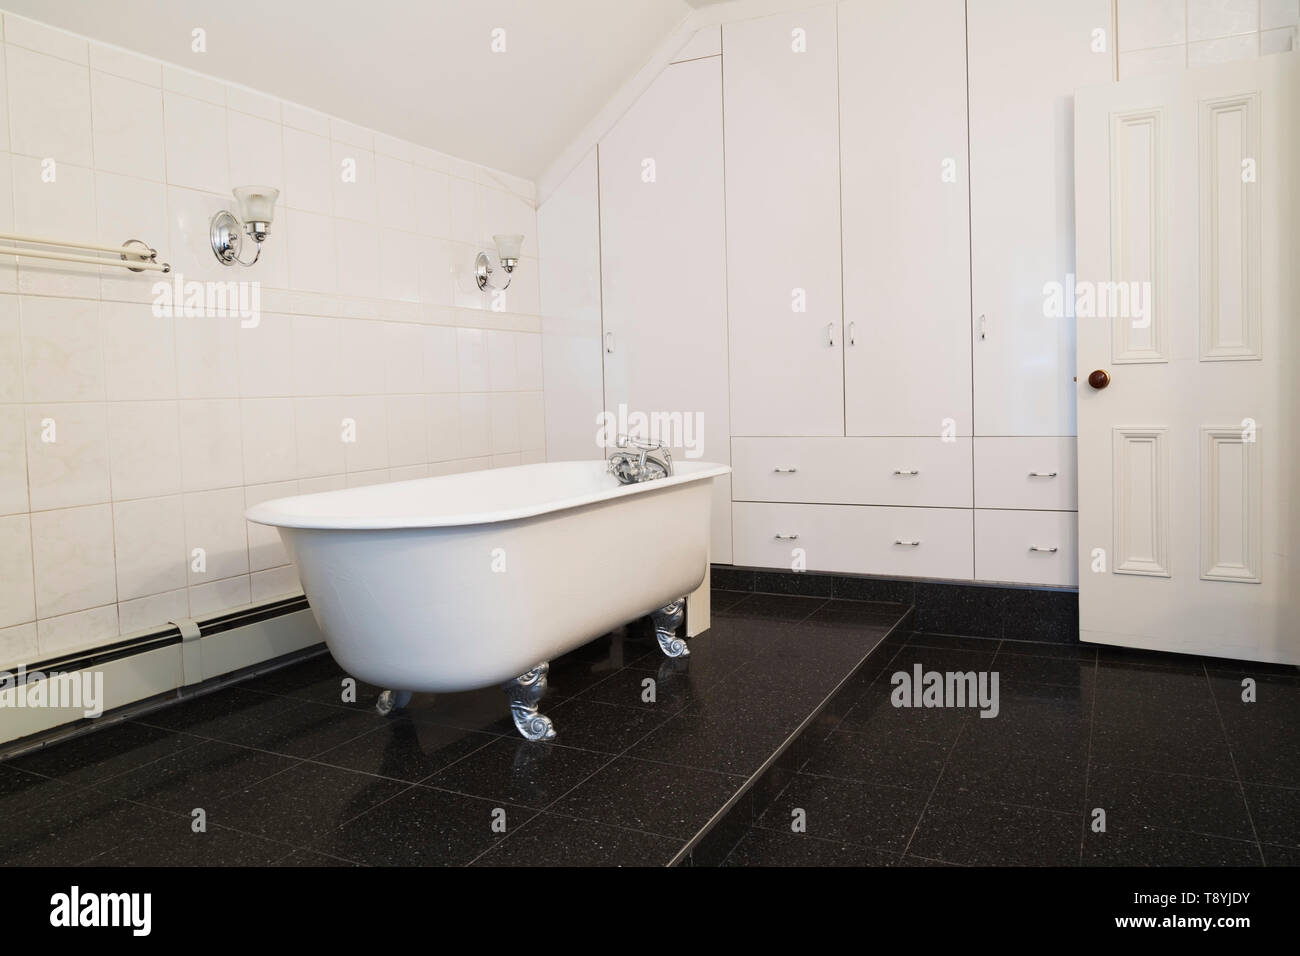 White antique cast iron claw foot bathtub on elevated black granite tile platform in main bathroom with white cabinets and drawers on upstairs floor i - Stock Image